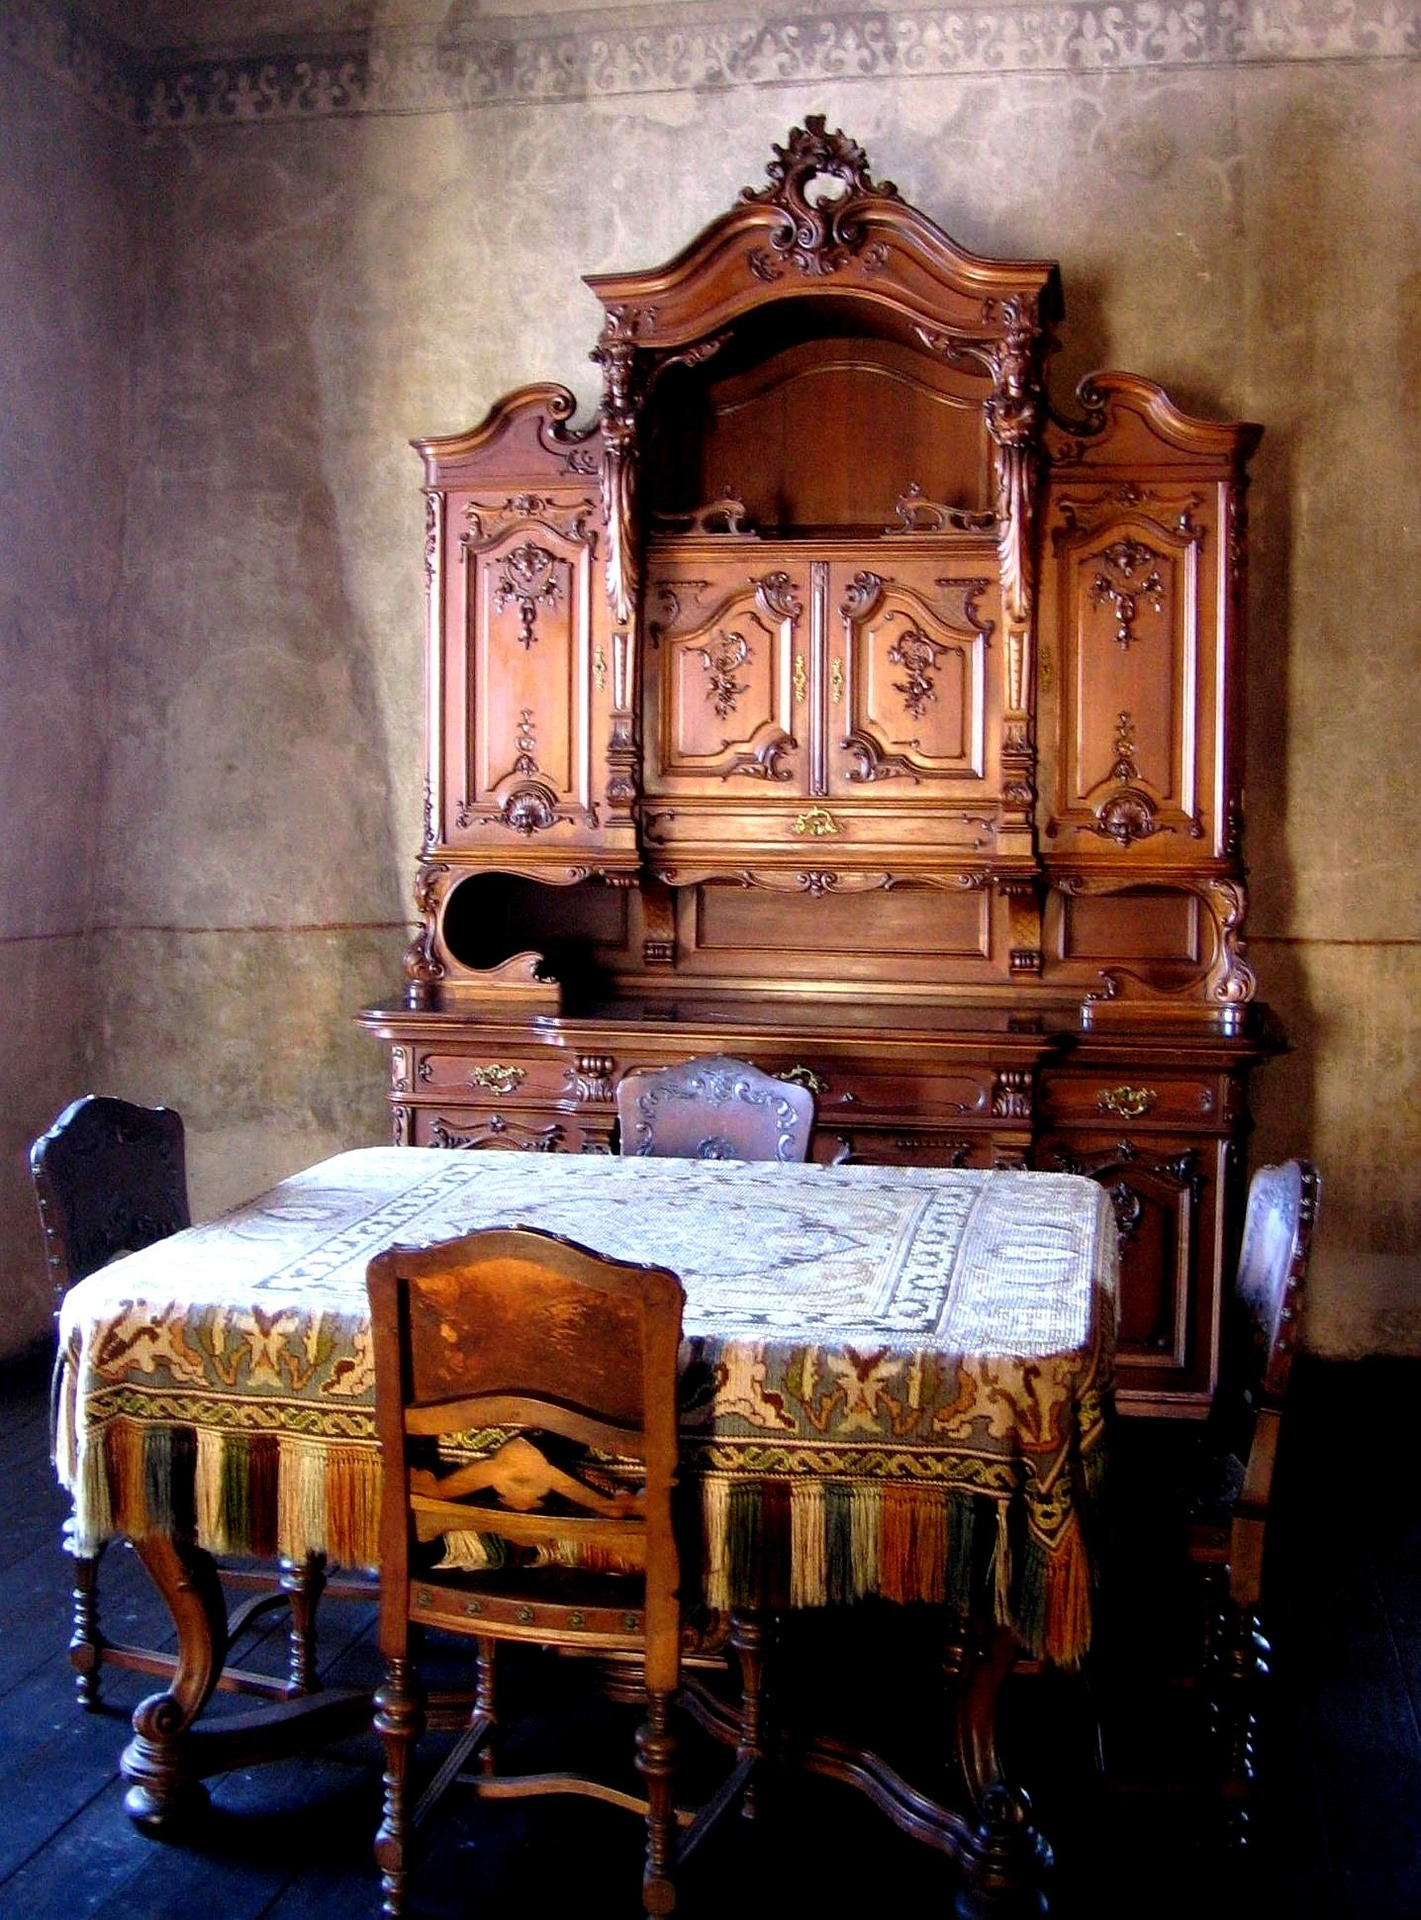 How to find out what antique furniture is worth - What's It Worth? Find The Value Of Your Inherited Furniture